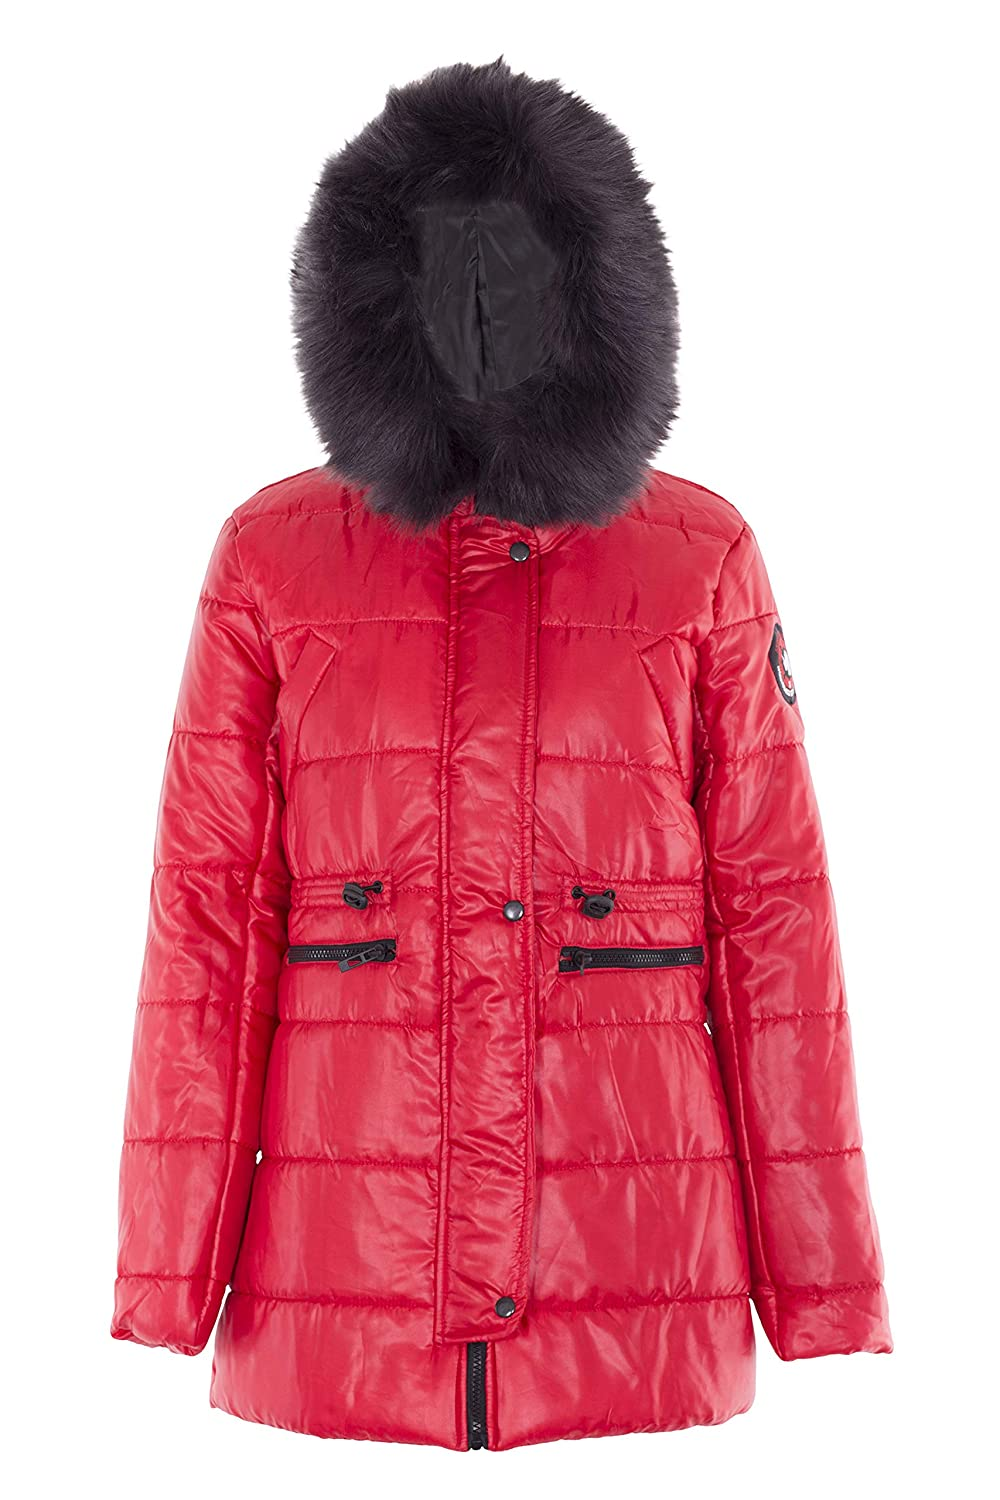 Noroze Womens Jacket Ladies Padded Quilted Parka Coat